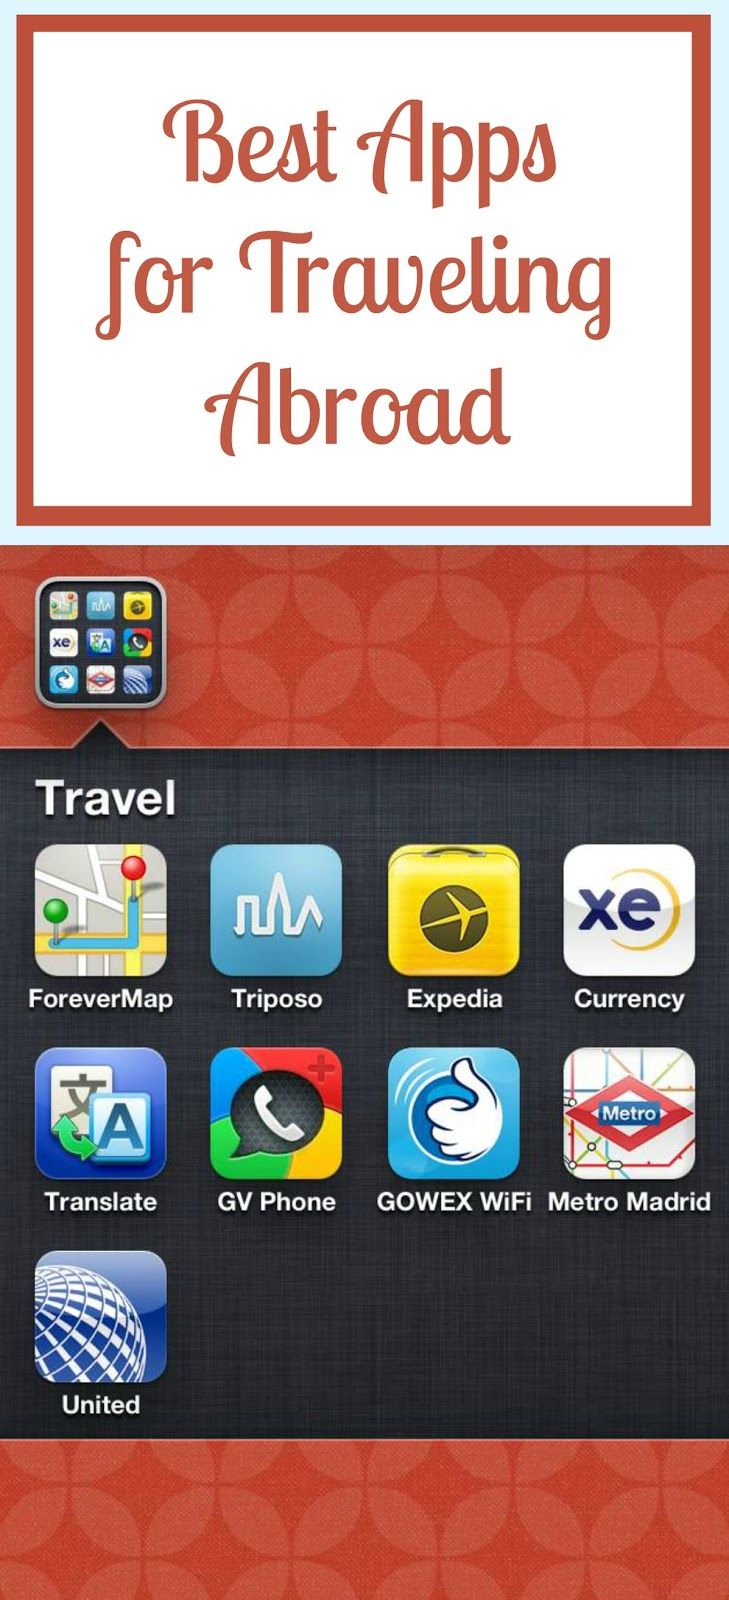 travel apps 2015 - the top apps you must have when traveling. Want To Make Money To Fund Your Travels? This System Helped Me Earn Over $100K In One Year And Is Allowing Me To Travel Every 90 Days: http://iwritemypaycheck.com/travelfunding/?t=pin #travelapp #travelapps #travelapproved